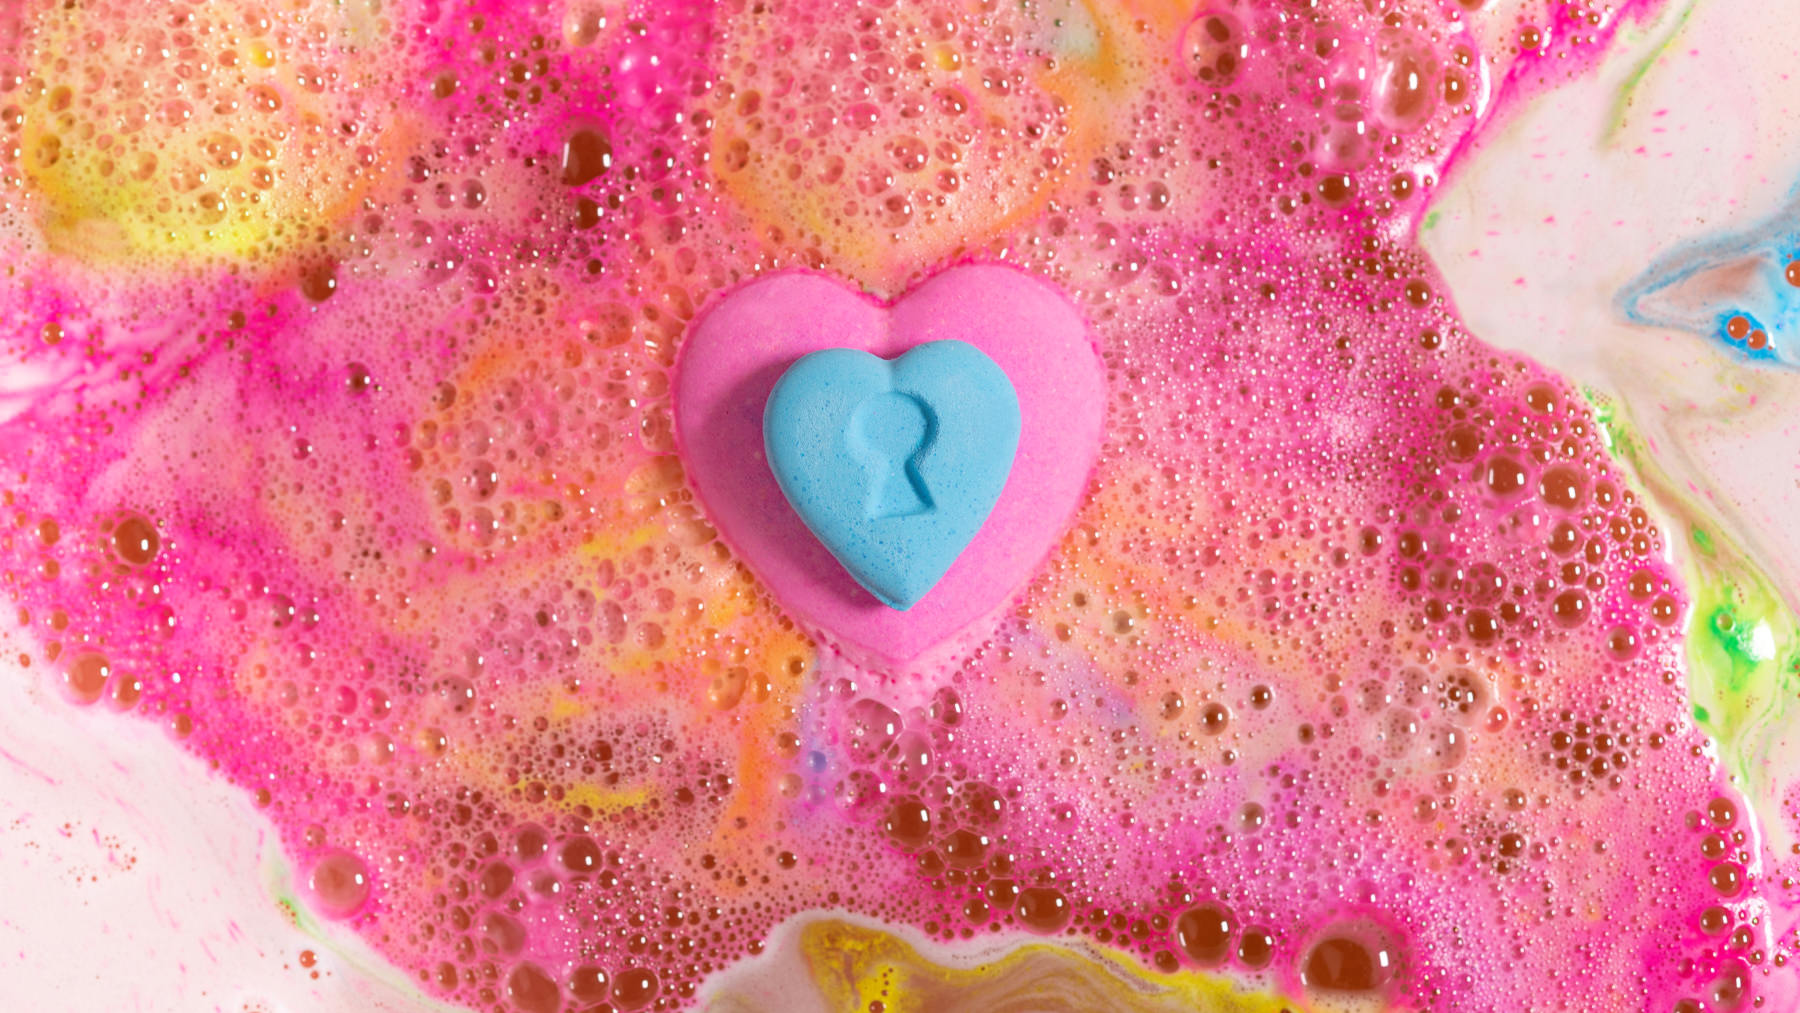 heart shaped amazeball bath bomb surrounded by its own bright pink and orange foam